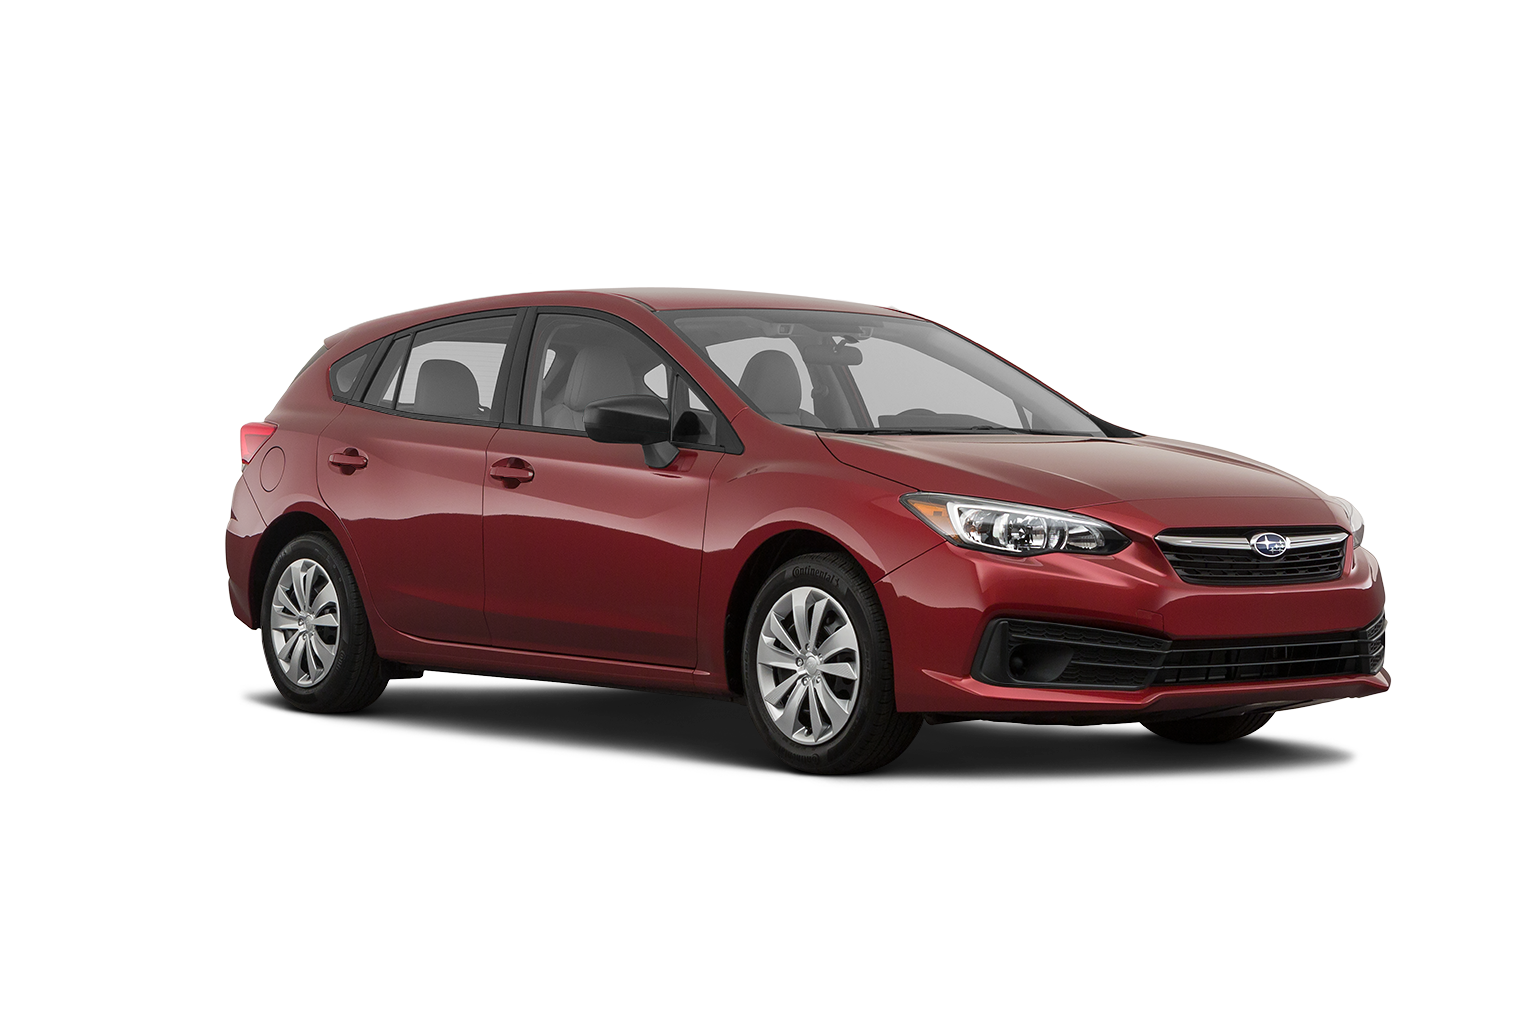 2021 Subaru Impreza lease deal